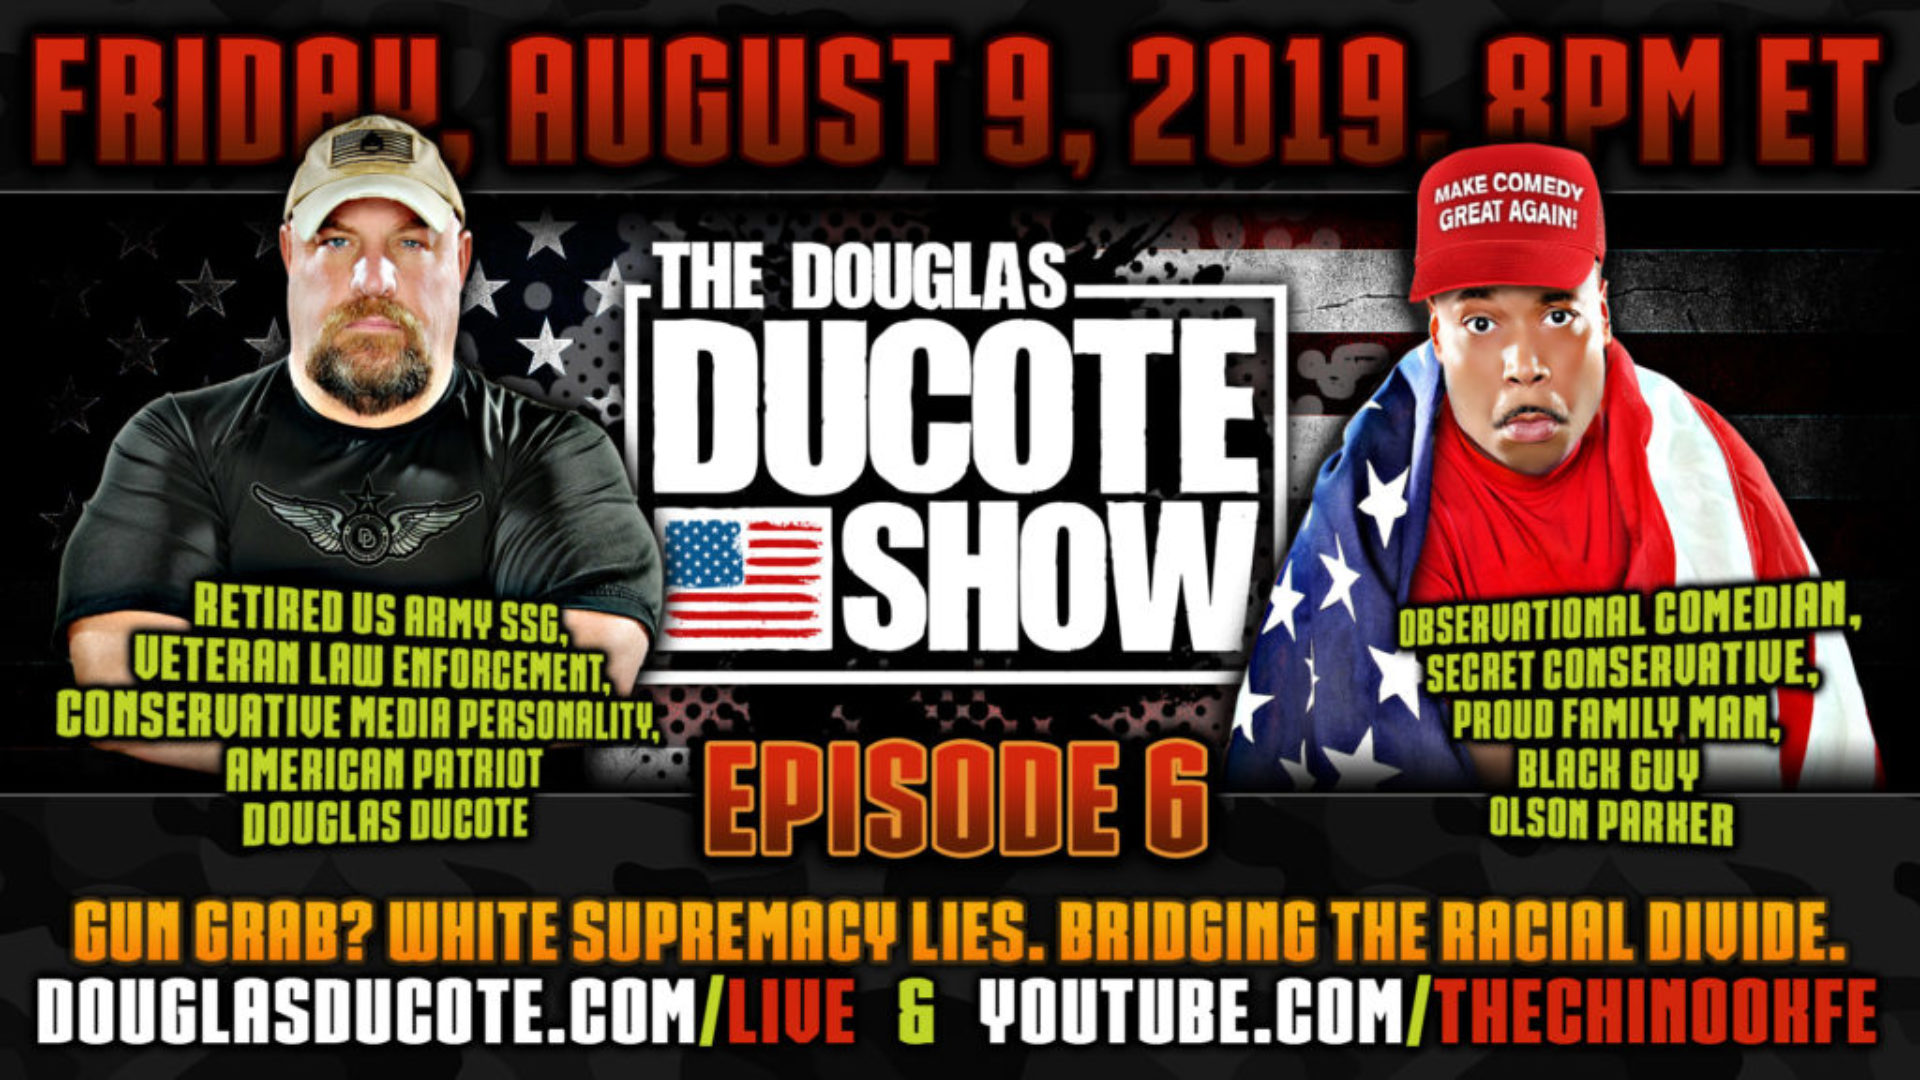 The-Douglas-Ducote-Show-Episode-6-1